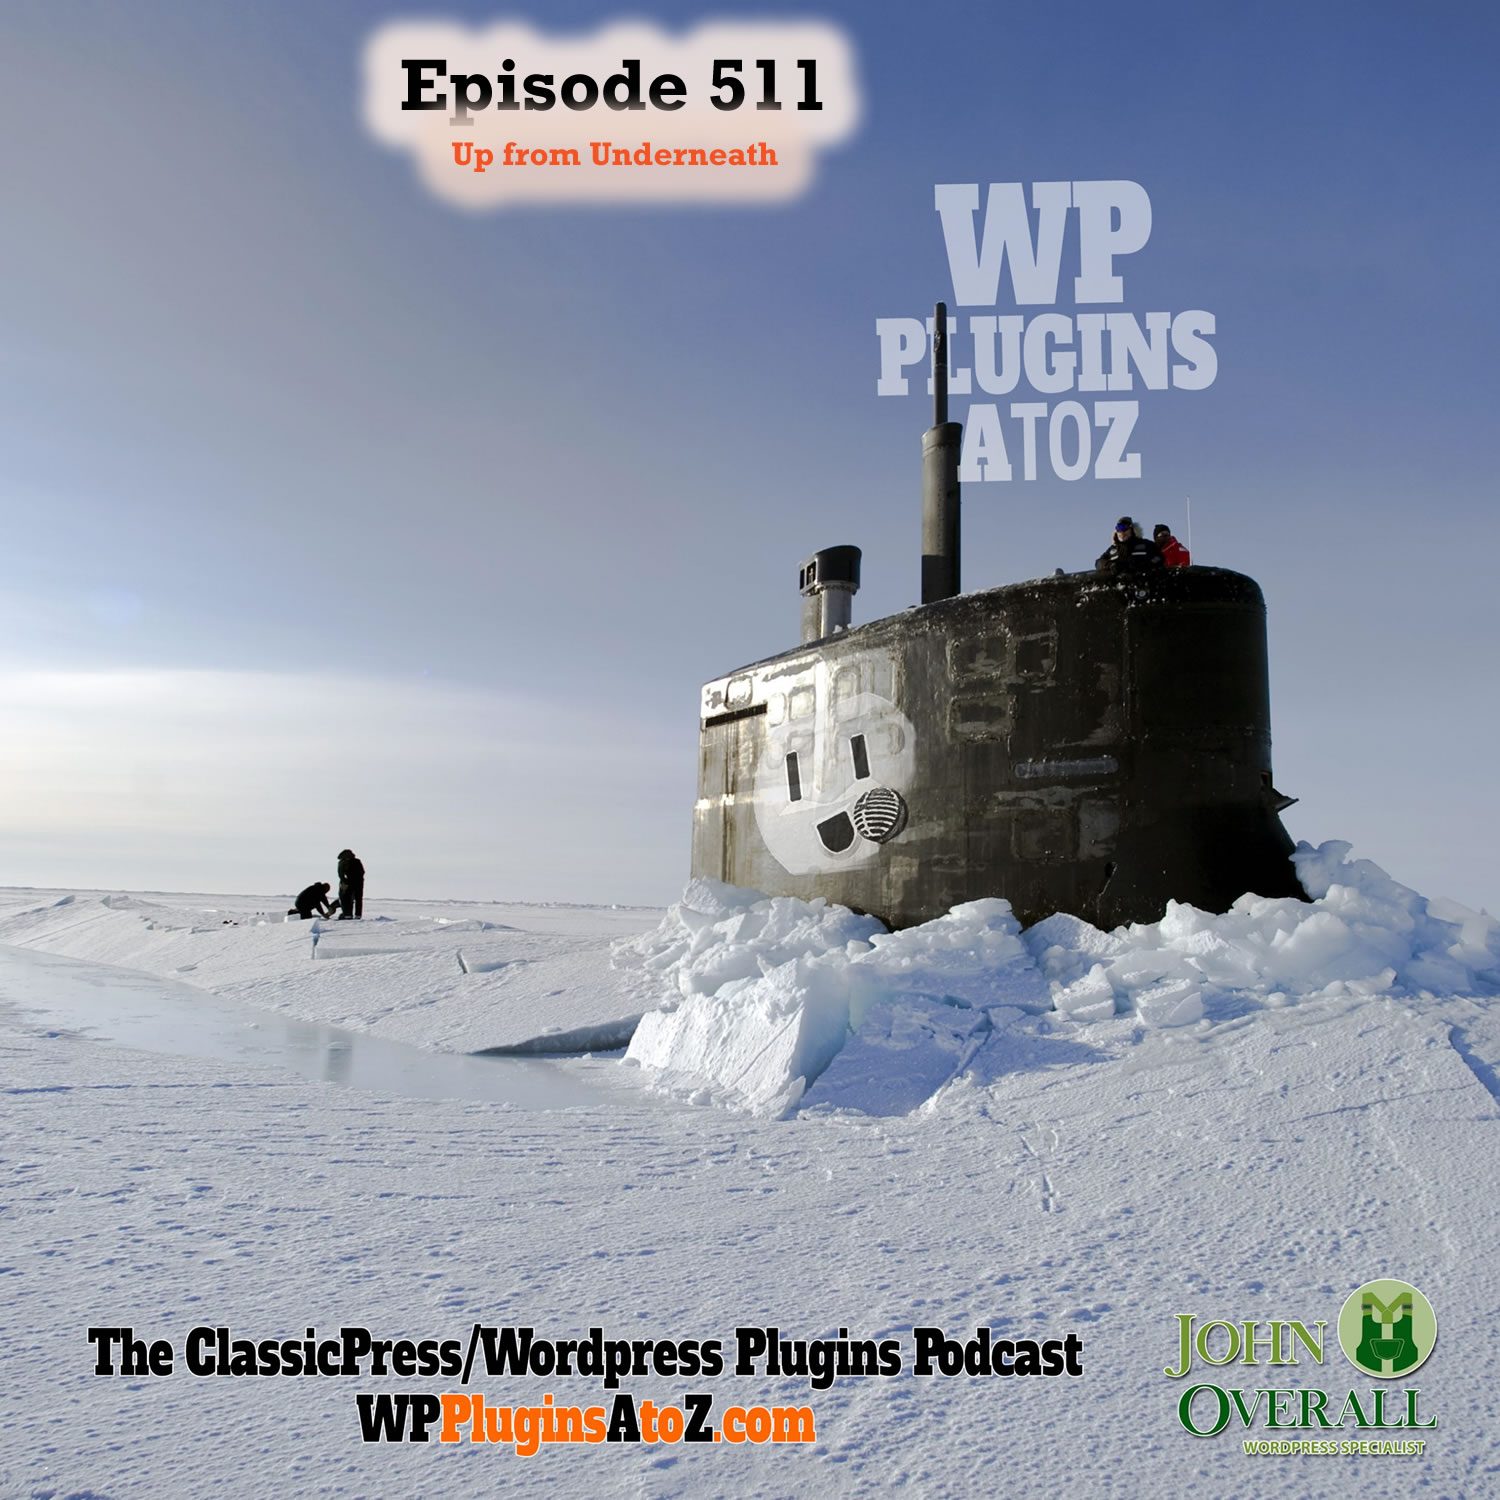 It's Episode 511 - We have plugins for Tracking, Stopping the Berg, No ID for you, Web Apps, Predicting the Weather, WooCommerce Stock messages ..., and ClassicPress Options.